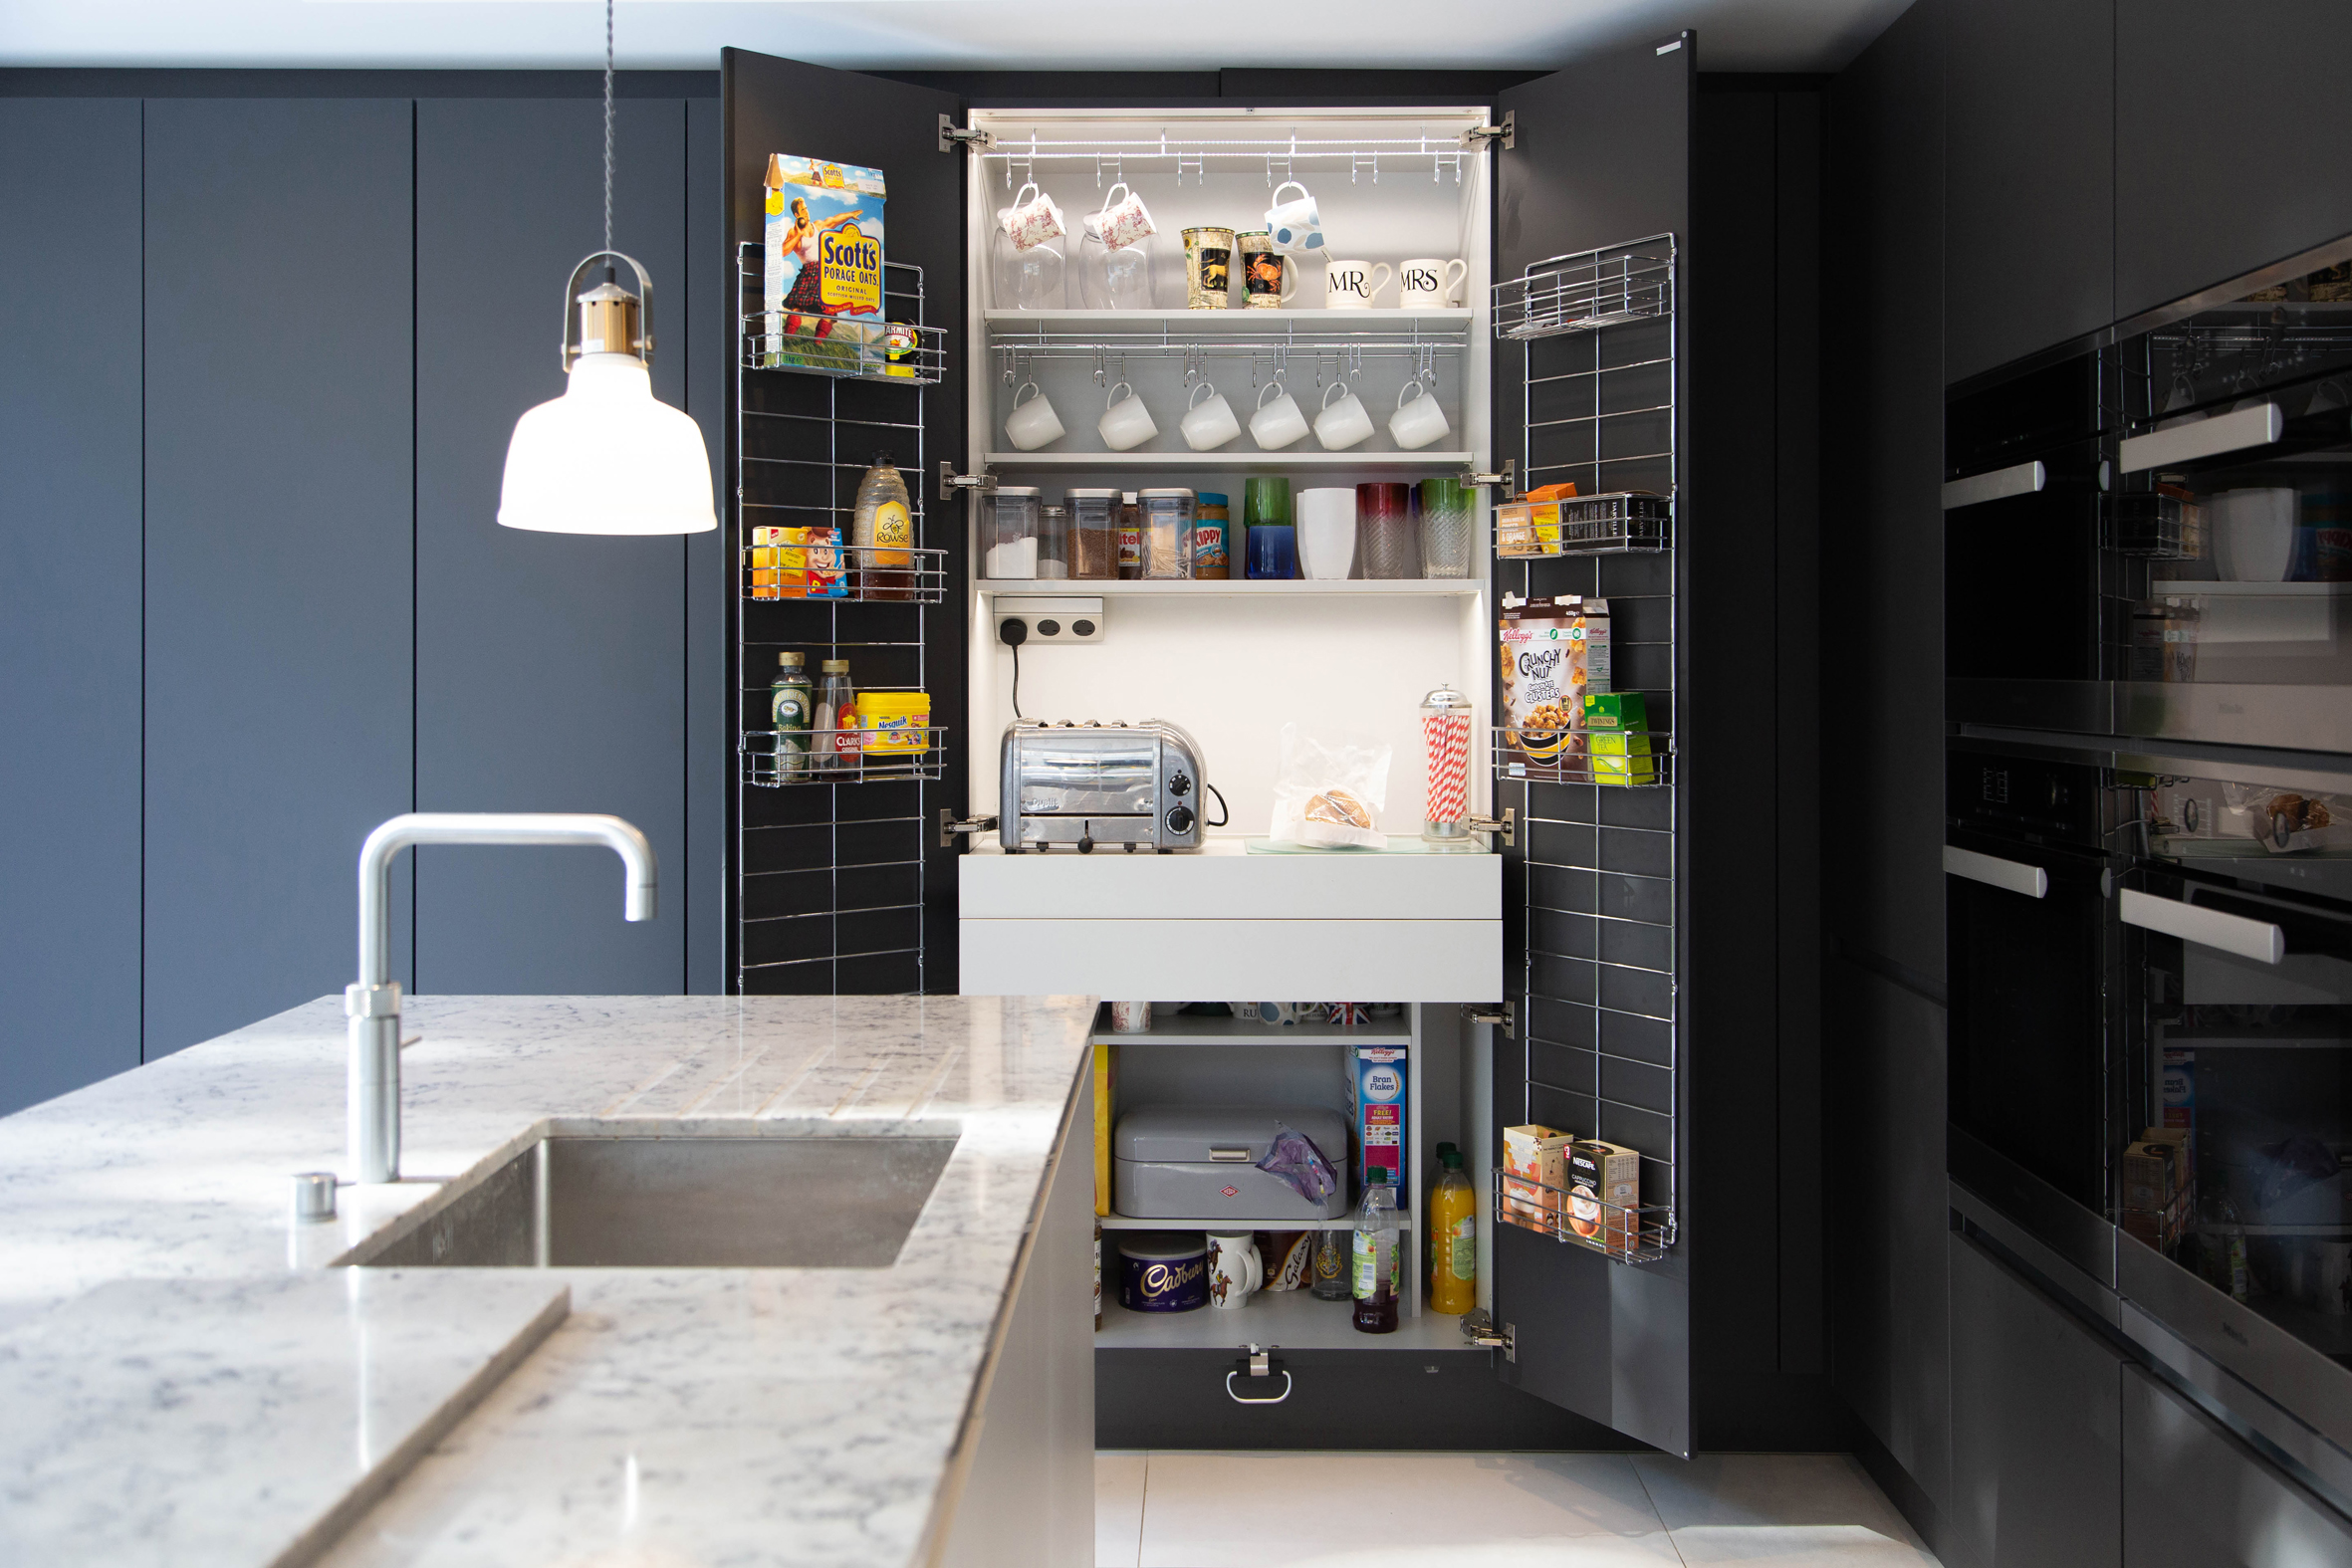 Vogue Kitchens Sink and Pantry